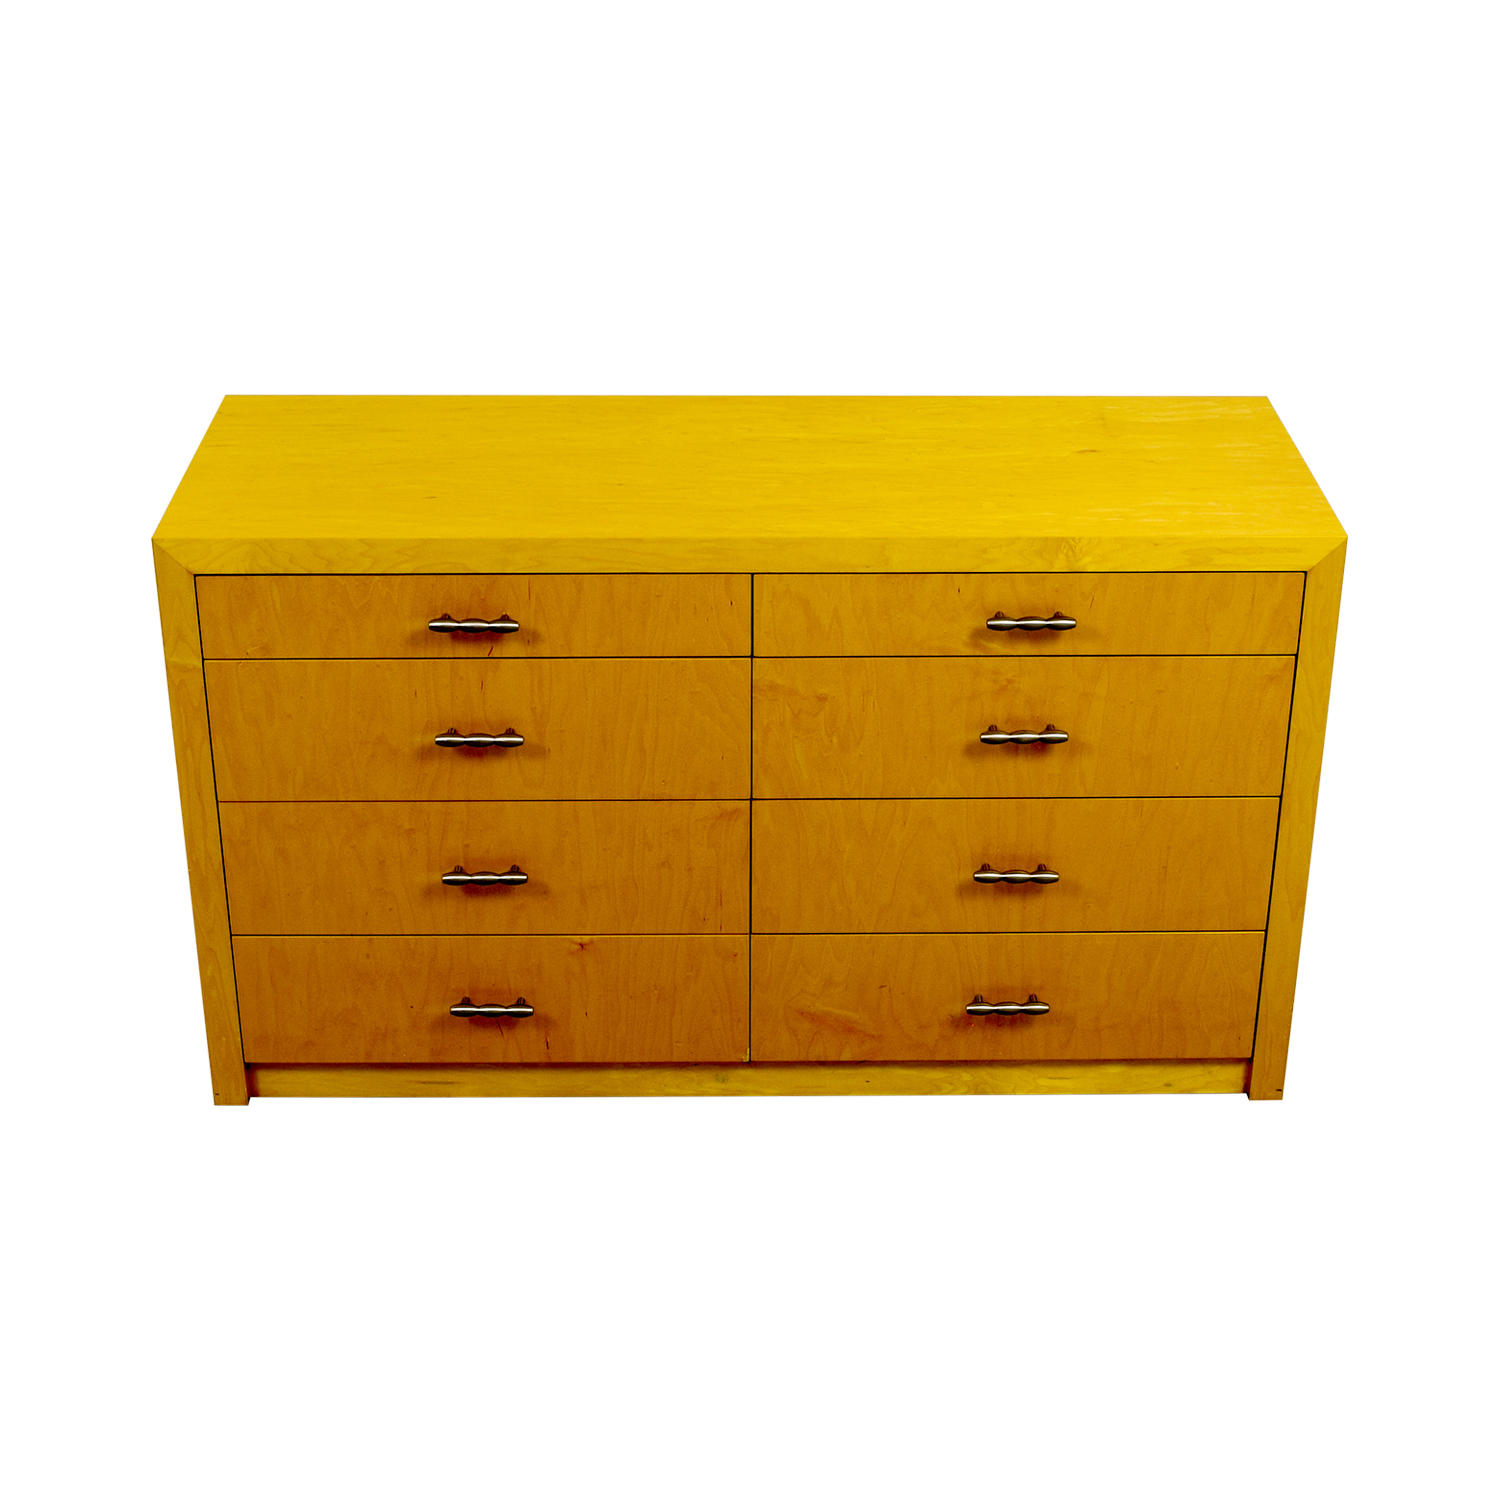 Manhattan Cabinetry Manhattan Cabinetry Maple Eight-Drawer Dresser for sale